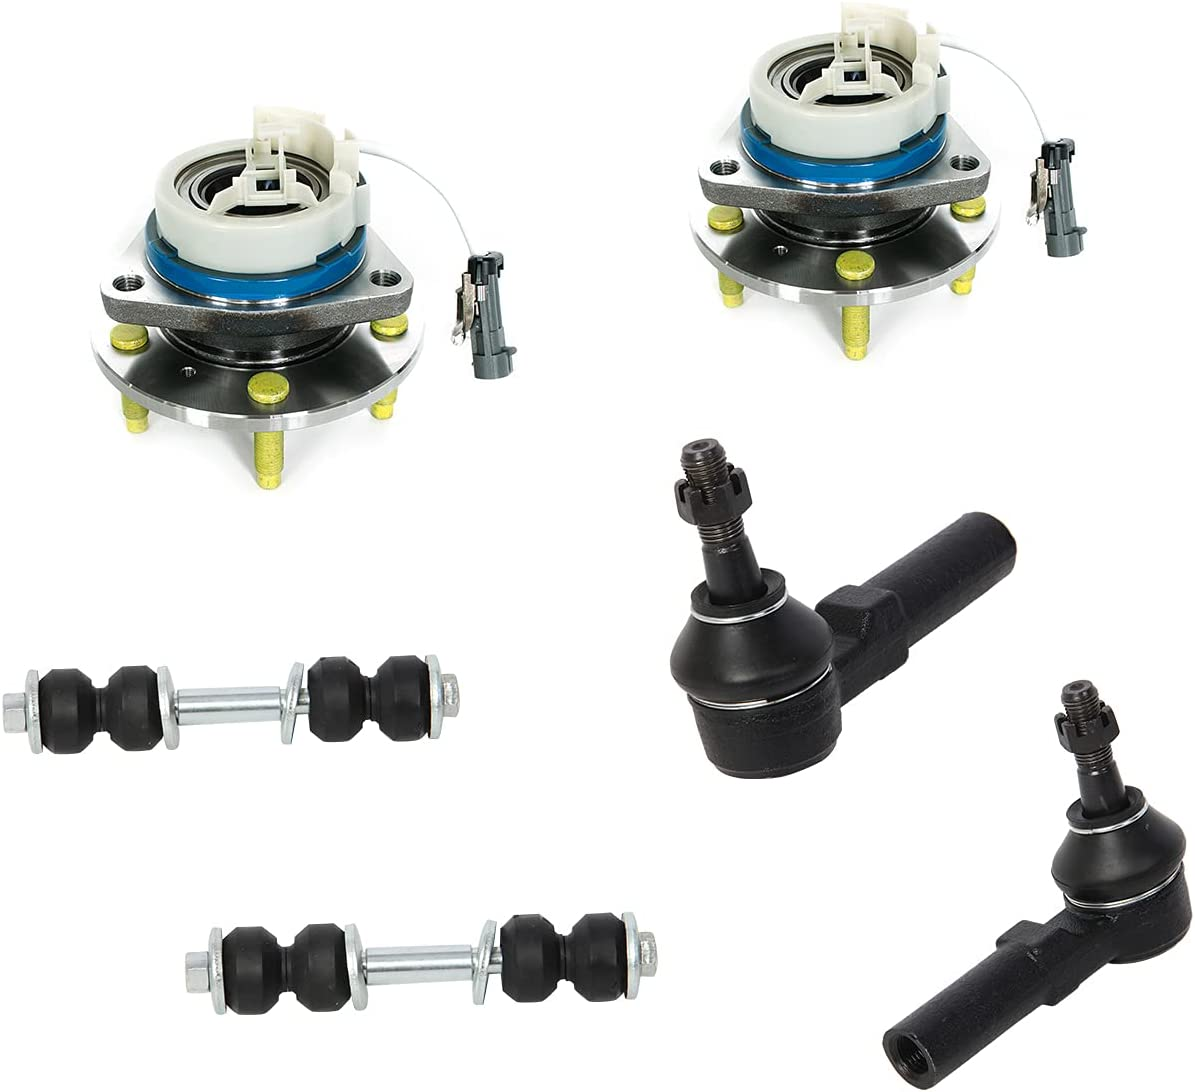 Motorman 6pc 2x513121+2x K5255+2xES3452 High quality Ranking integrated 1st place outer tie hu rods wheel